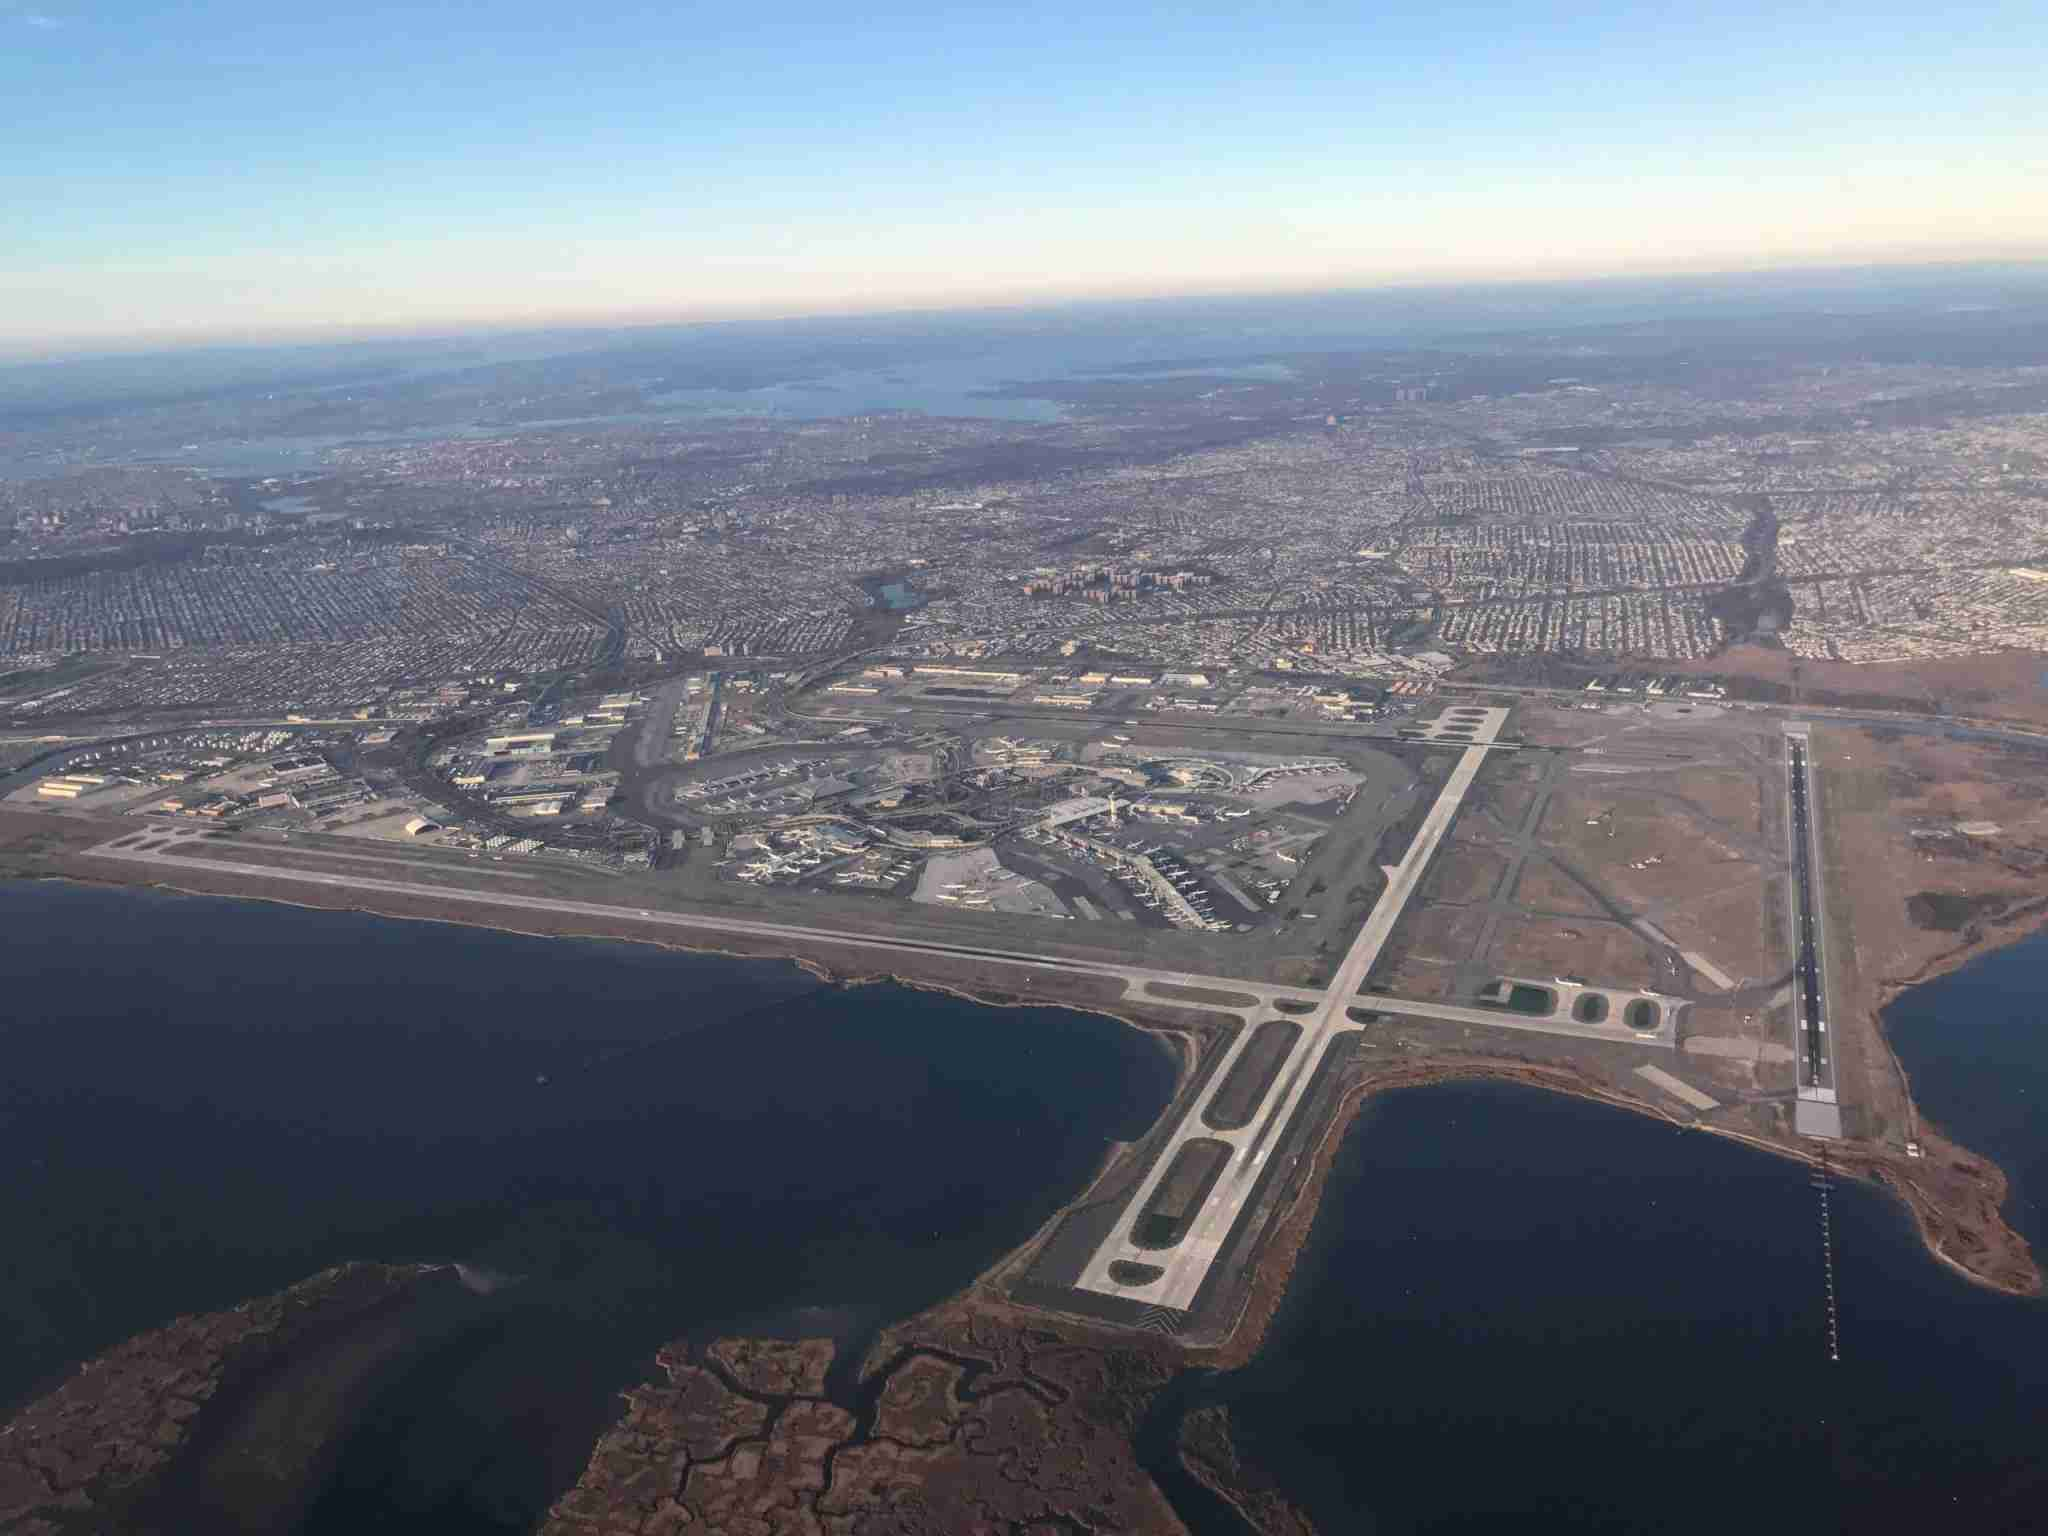 An aerial view of John F. Kennedy International Airport Airport is seen from a plane overNew York City on December 4, 2016. / AFP / Daniel SLIM (Photo credit should read DANIEL SLIM/AFP via Getty Images)